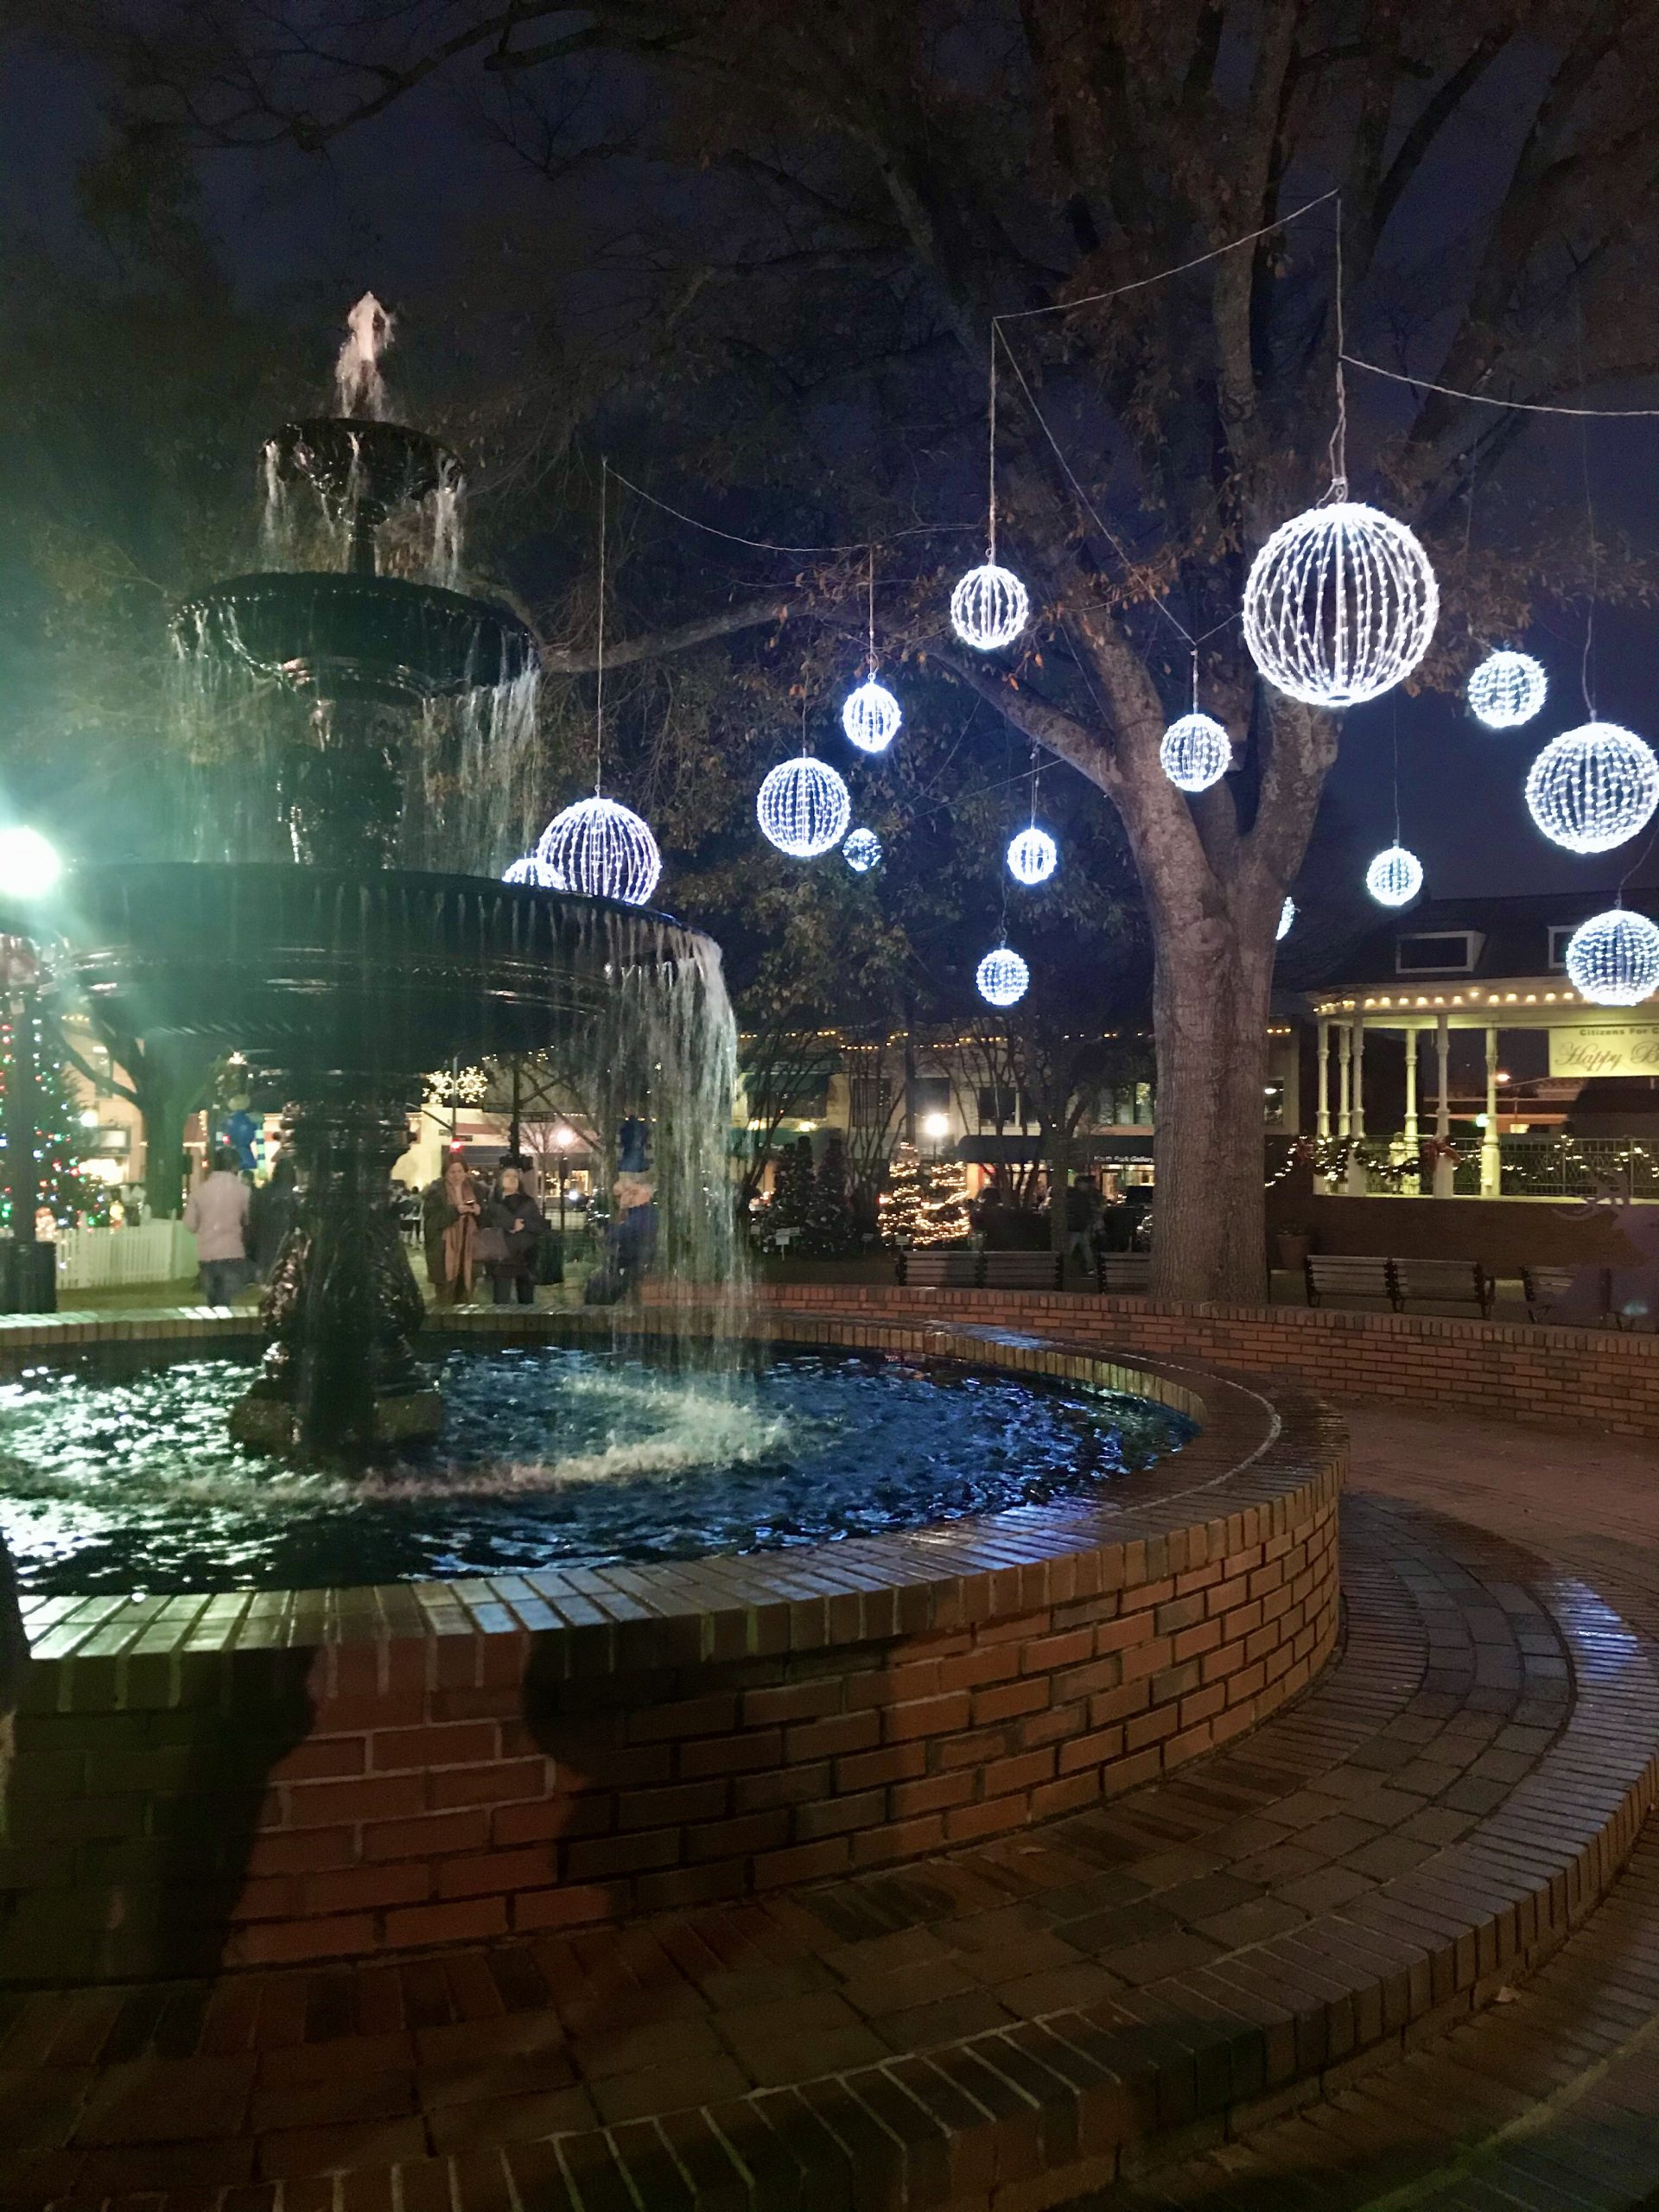 Marietta Square Holiday Decorations - Holiday Weekend in Marietta